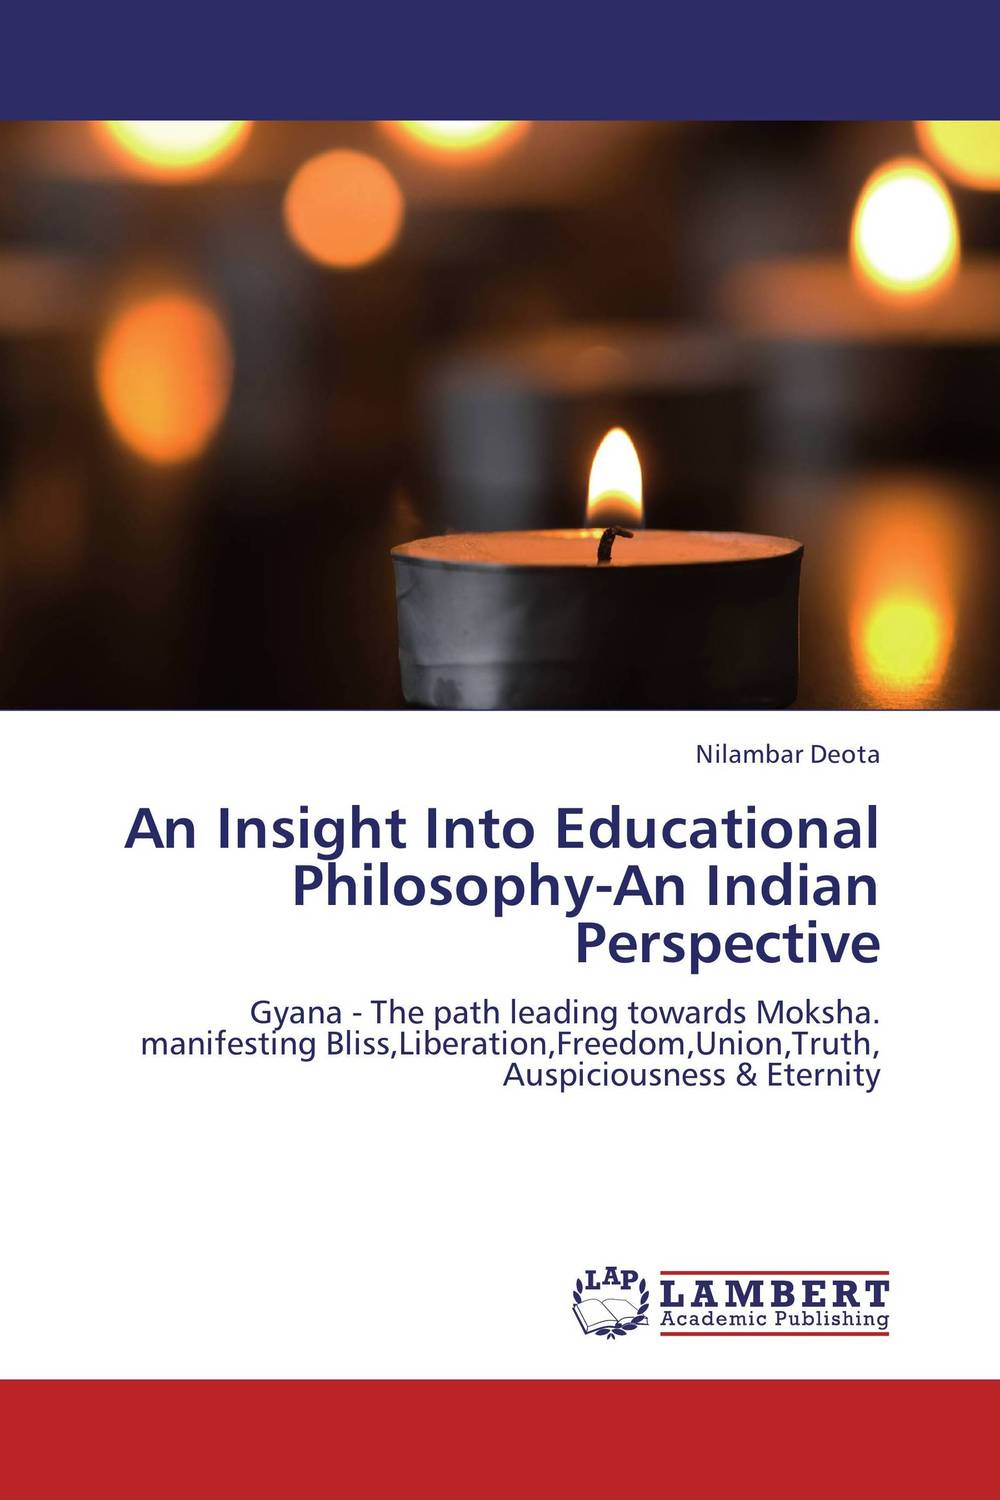 An Insight Into Educational Philosophy-An Indian Perspective gabriela pohoata romanian educational models in philosophy